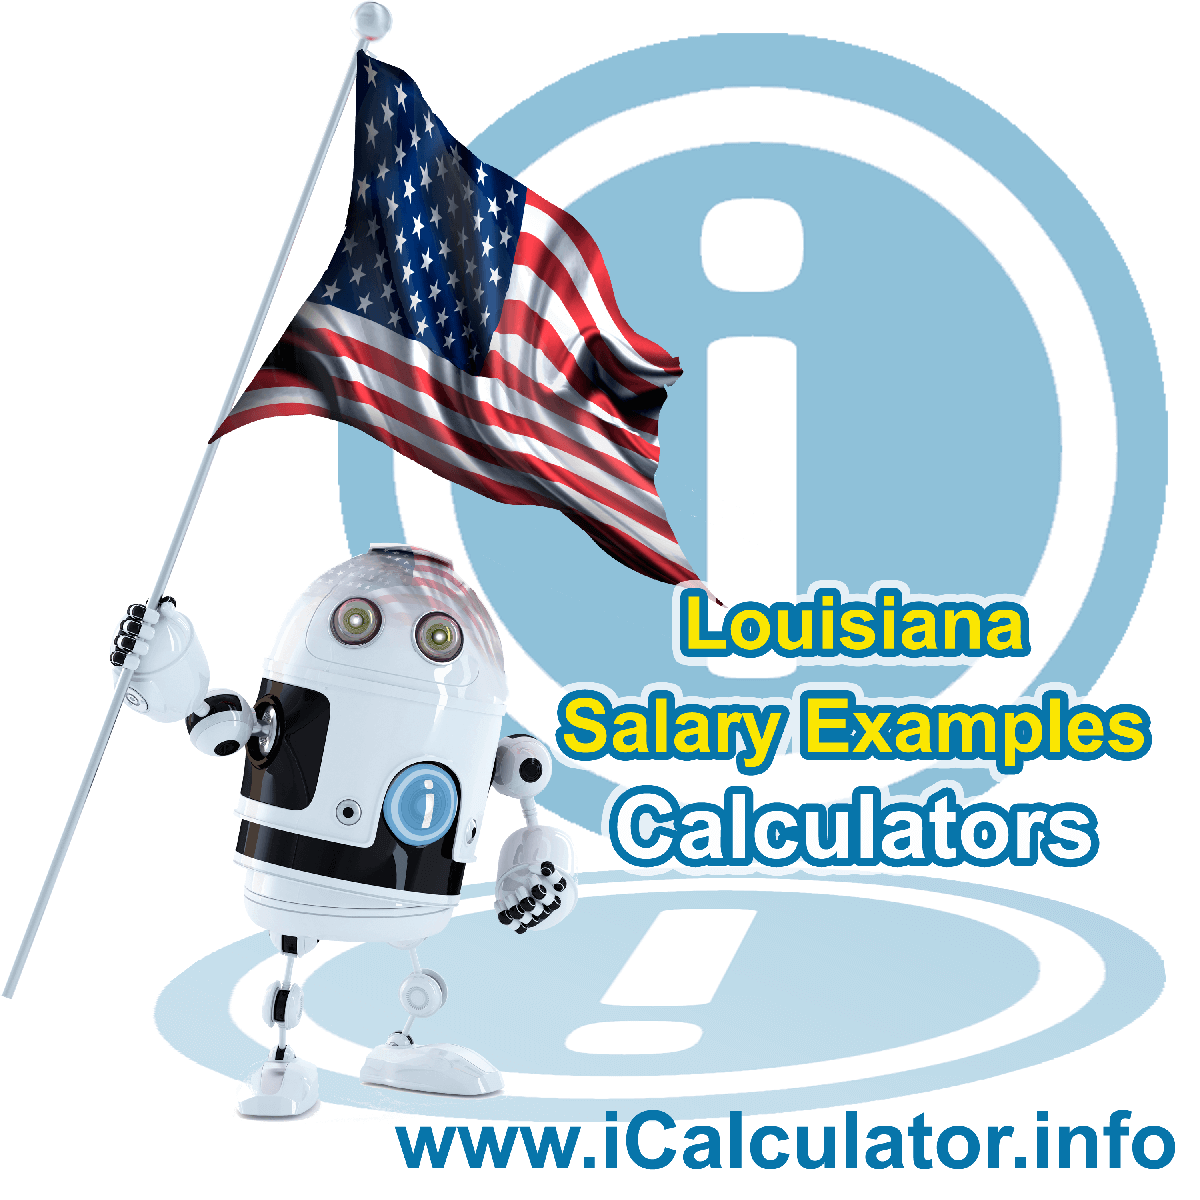 Louisiana Salary Example for $280.00 in 2020 | iCalculator | $280.00 salary example for employee and employer paying Louisiana State tincome taxes. Detailed salary after tax calculation including Louisiana State Tax, Federal State Tax, Medicare Deductions, Social Security, Capital Gains and other income tax and salary deductions complete with supporting Louisiana state tax tables